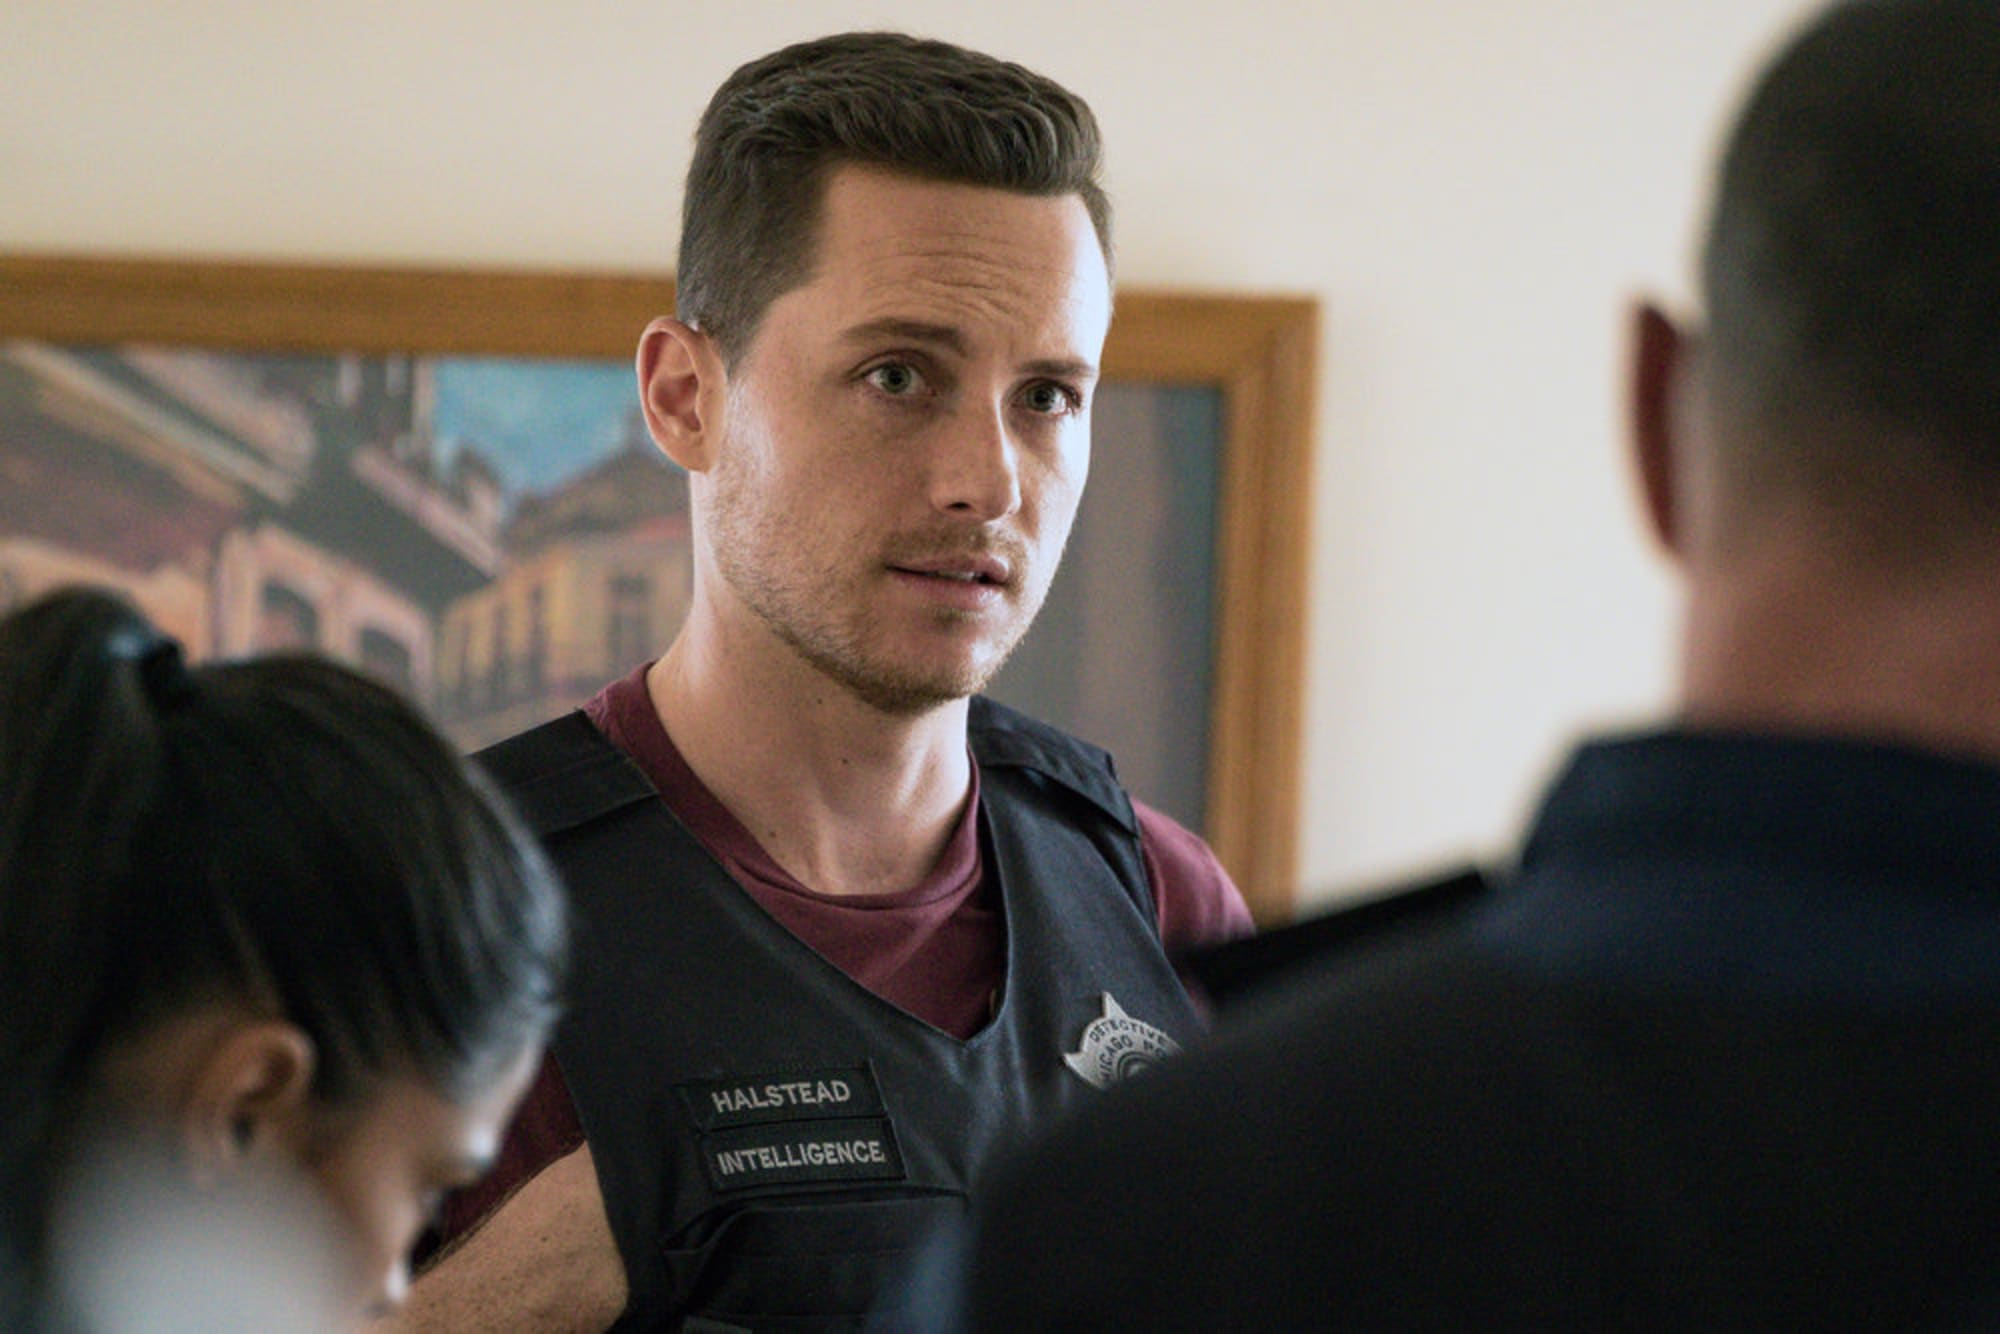 How does Jay Halstead fit into Chicago PD season 8?